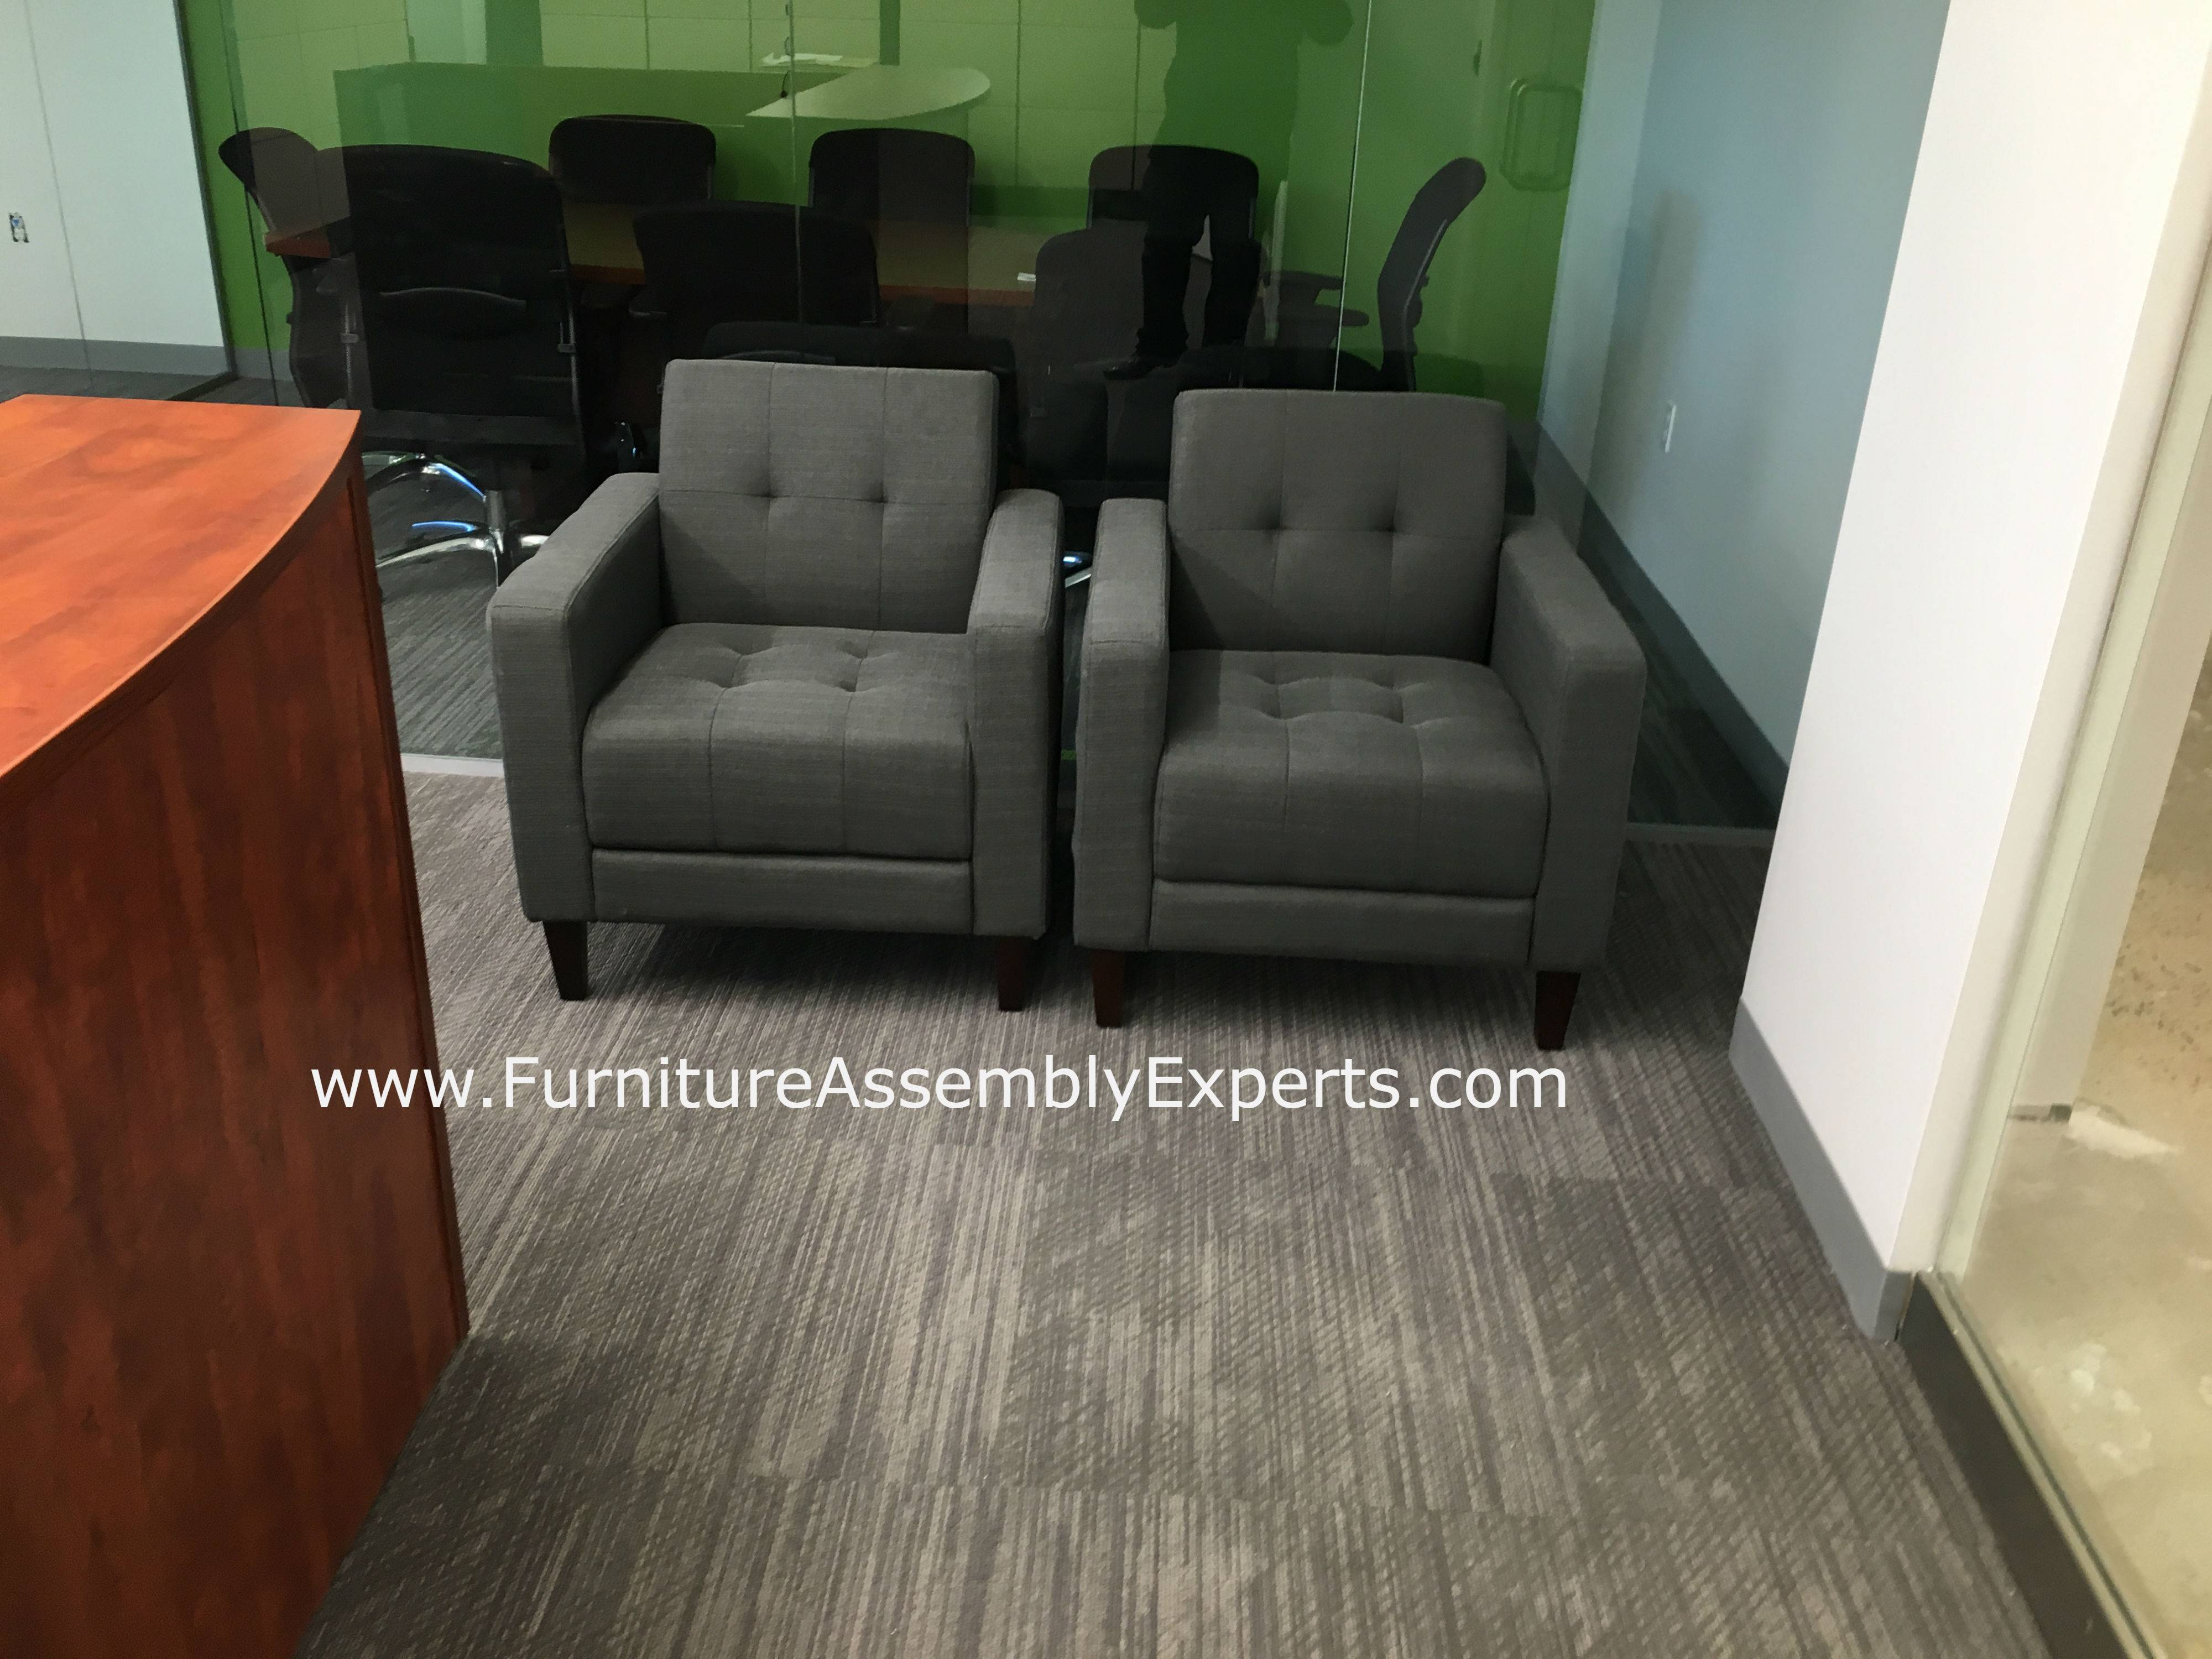 office lounge chairs installation service in Washington DC